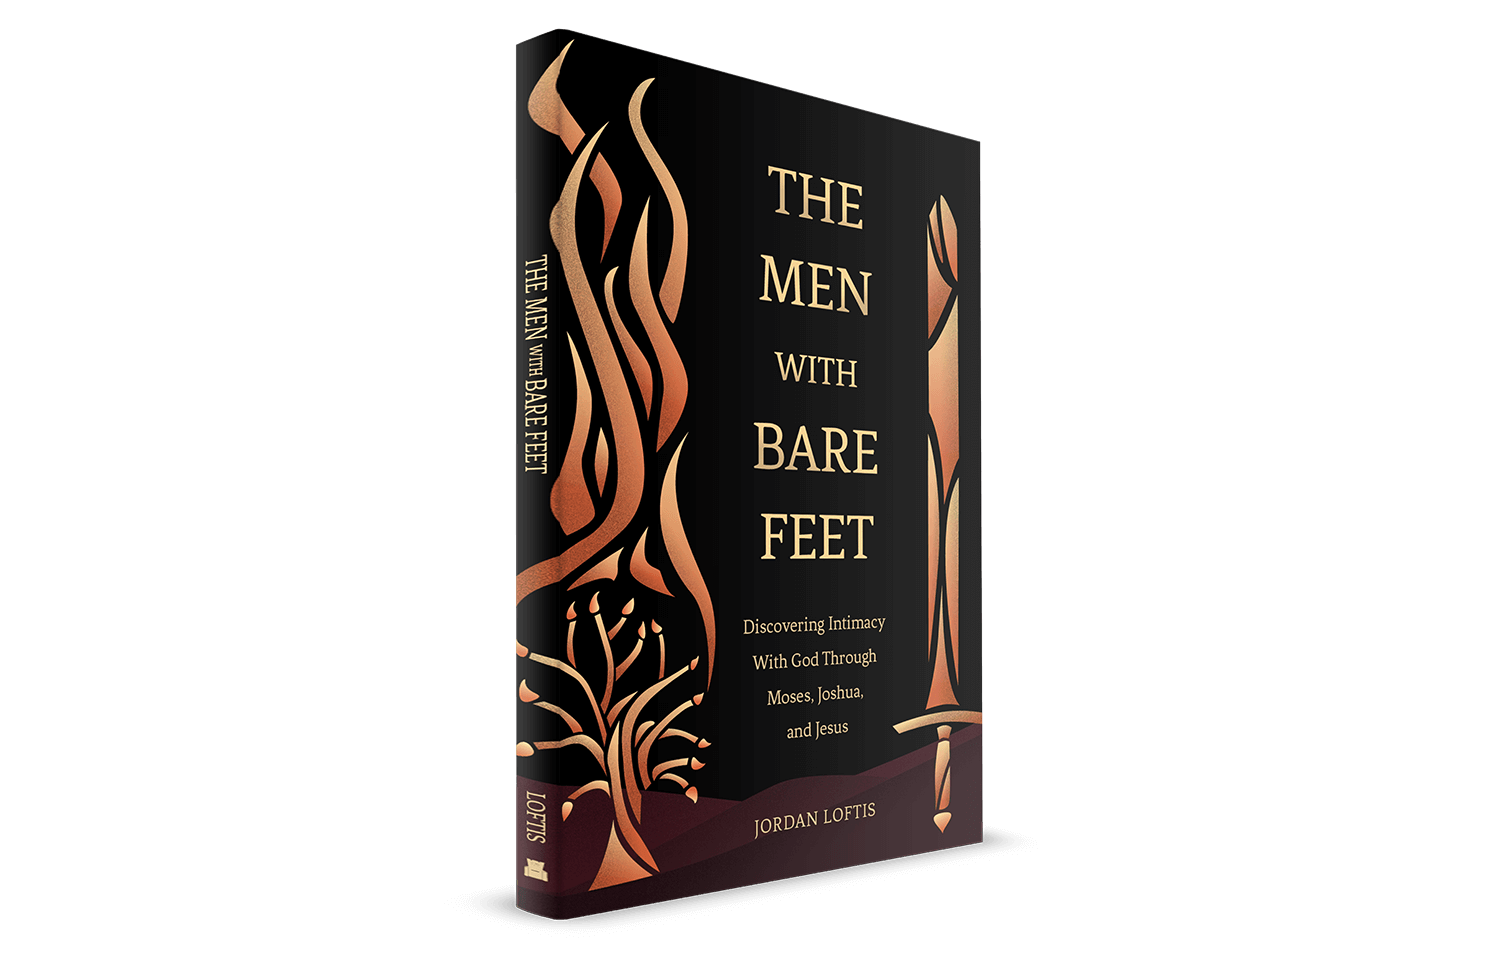 The Men with Bare Feet front cover